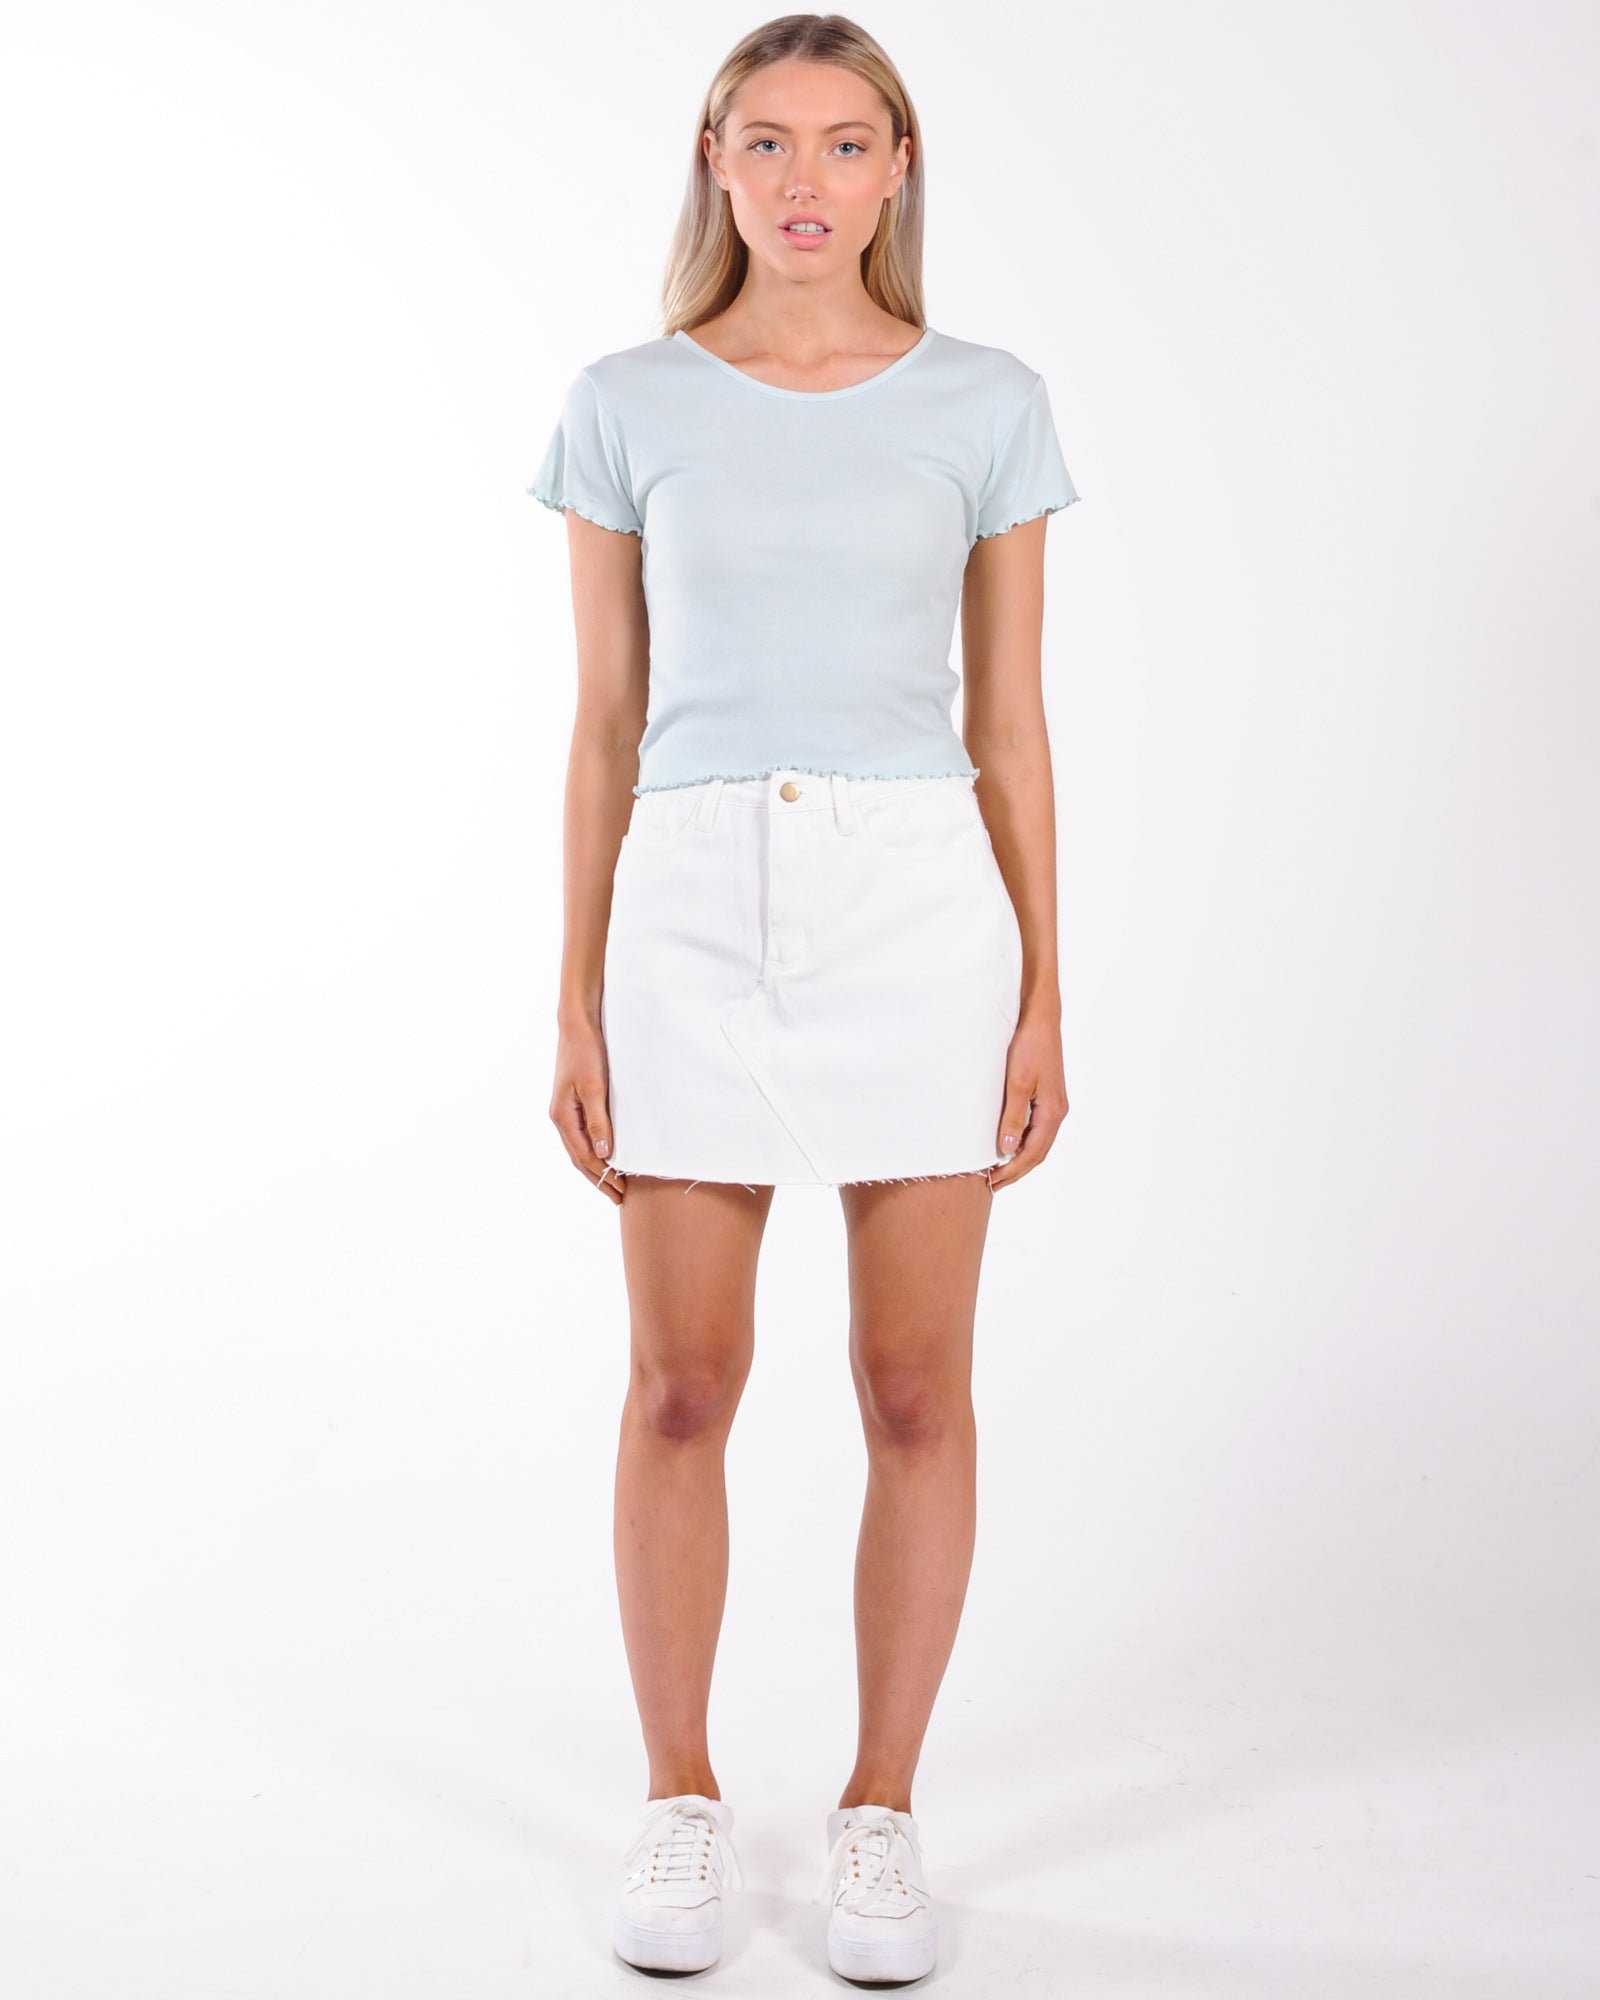 All About Eve Take You Away Tee - Light Blue